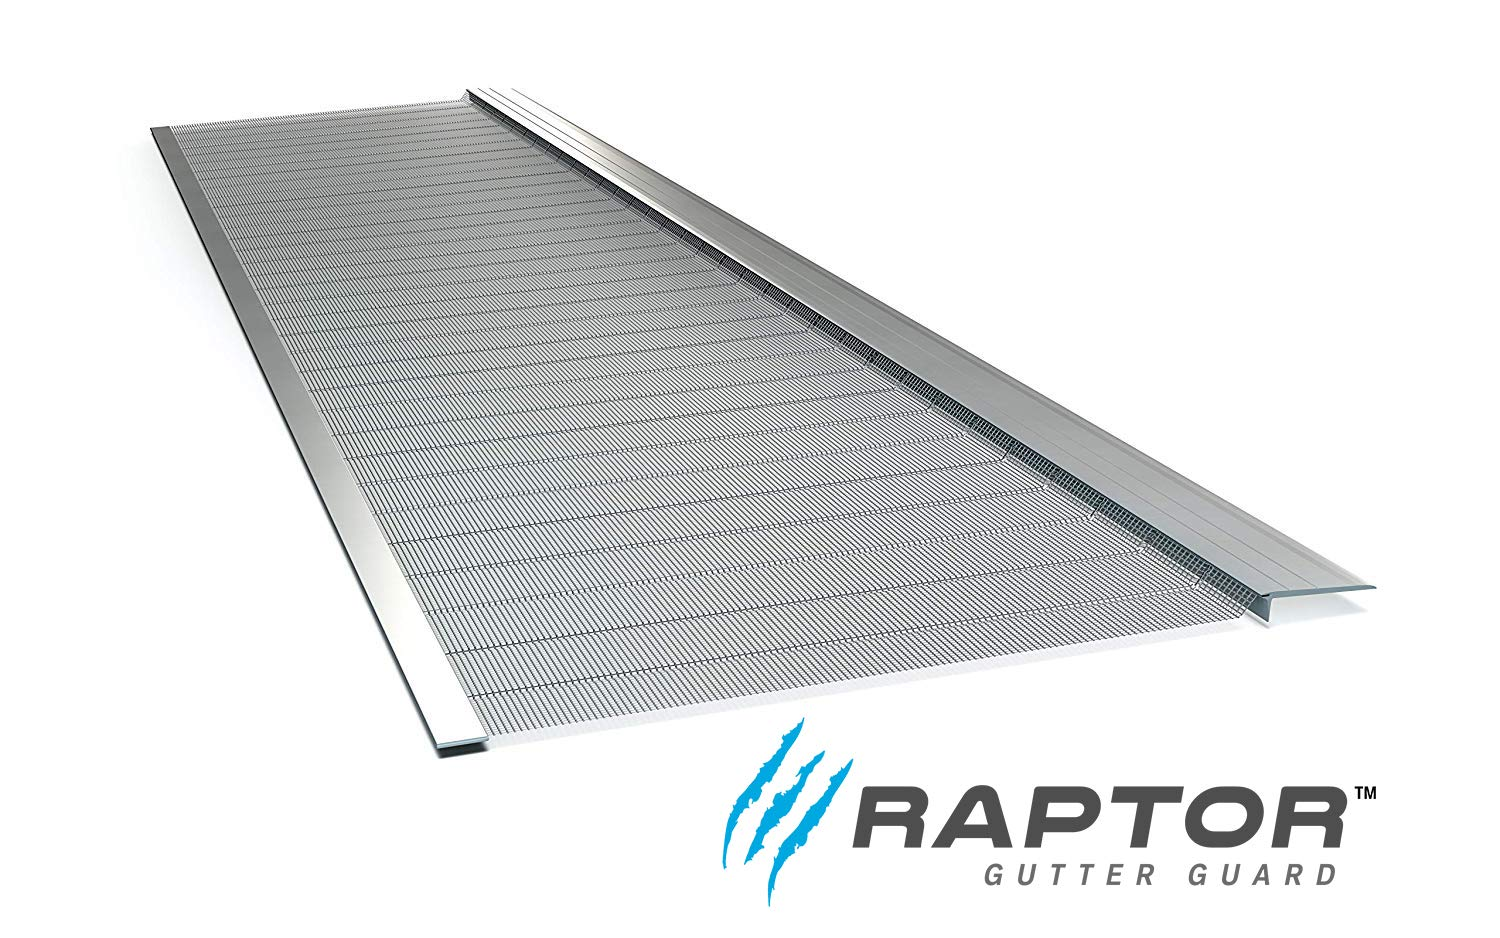 Raptor Gutter Guard   Stainless Steel Micro-Mesh, Contractor-Grade, DIY Gutter Cover. Fits Any Roof or Gutter Type - 48ft to a Box. Fits a Standard 5'' Gutter. by Gutterglove